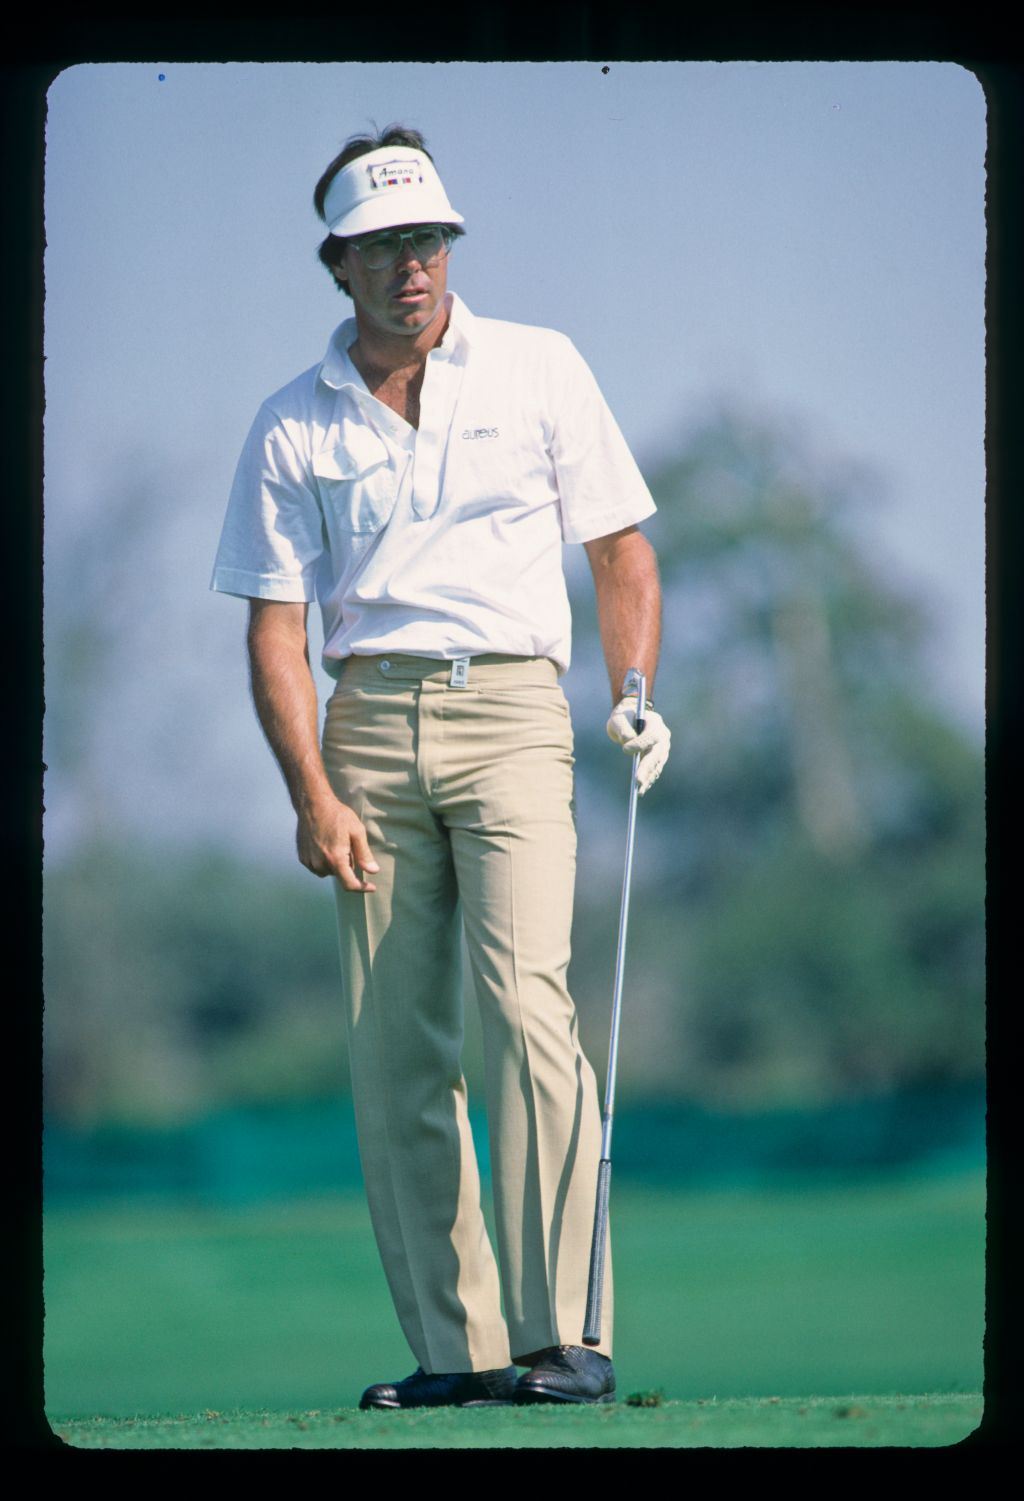 American golfer Bill Kratzert looking concerned after taking a one iron off the tee at the 1985 Hertz Bay Hill Classic